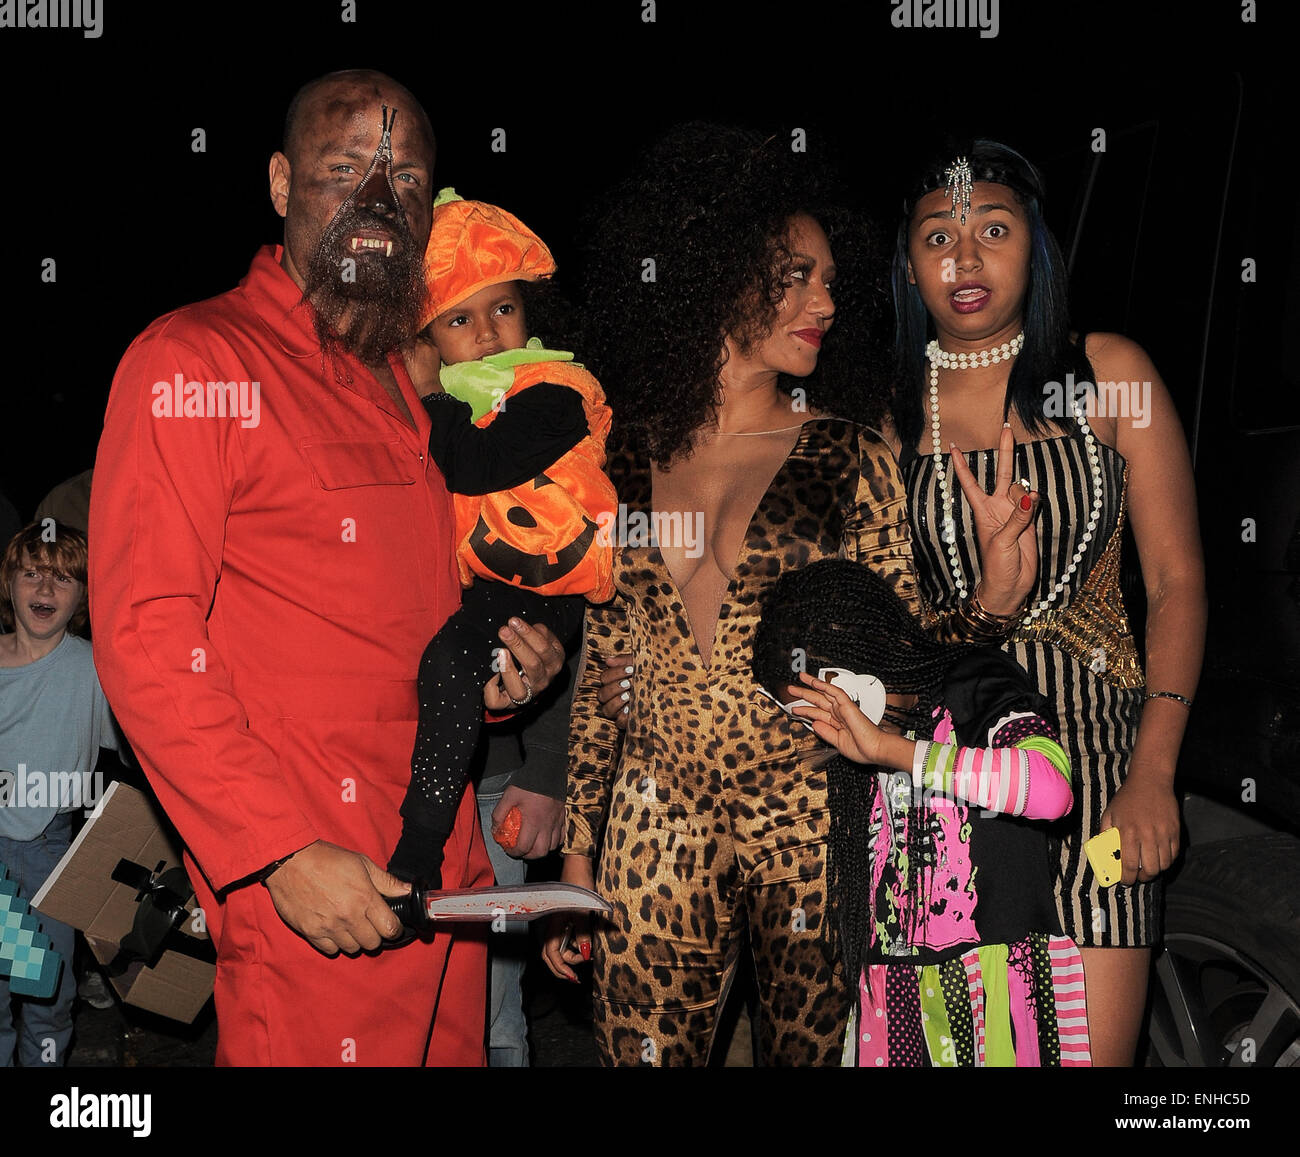 jonathan ross halloween party arrivals mel b attends the party dressed as her popstar alter ego scary spice while husband stephen belafonte attends